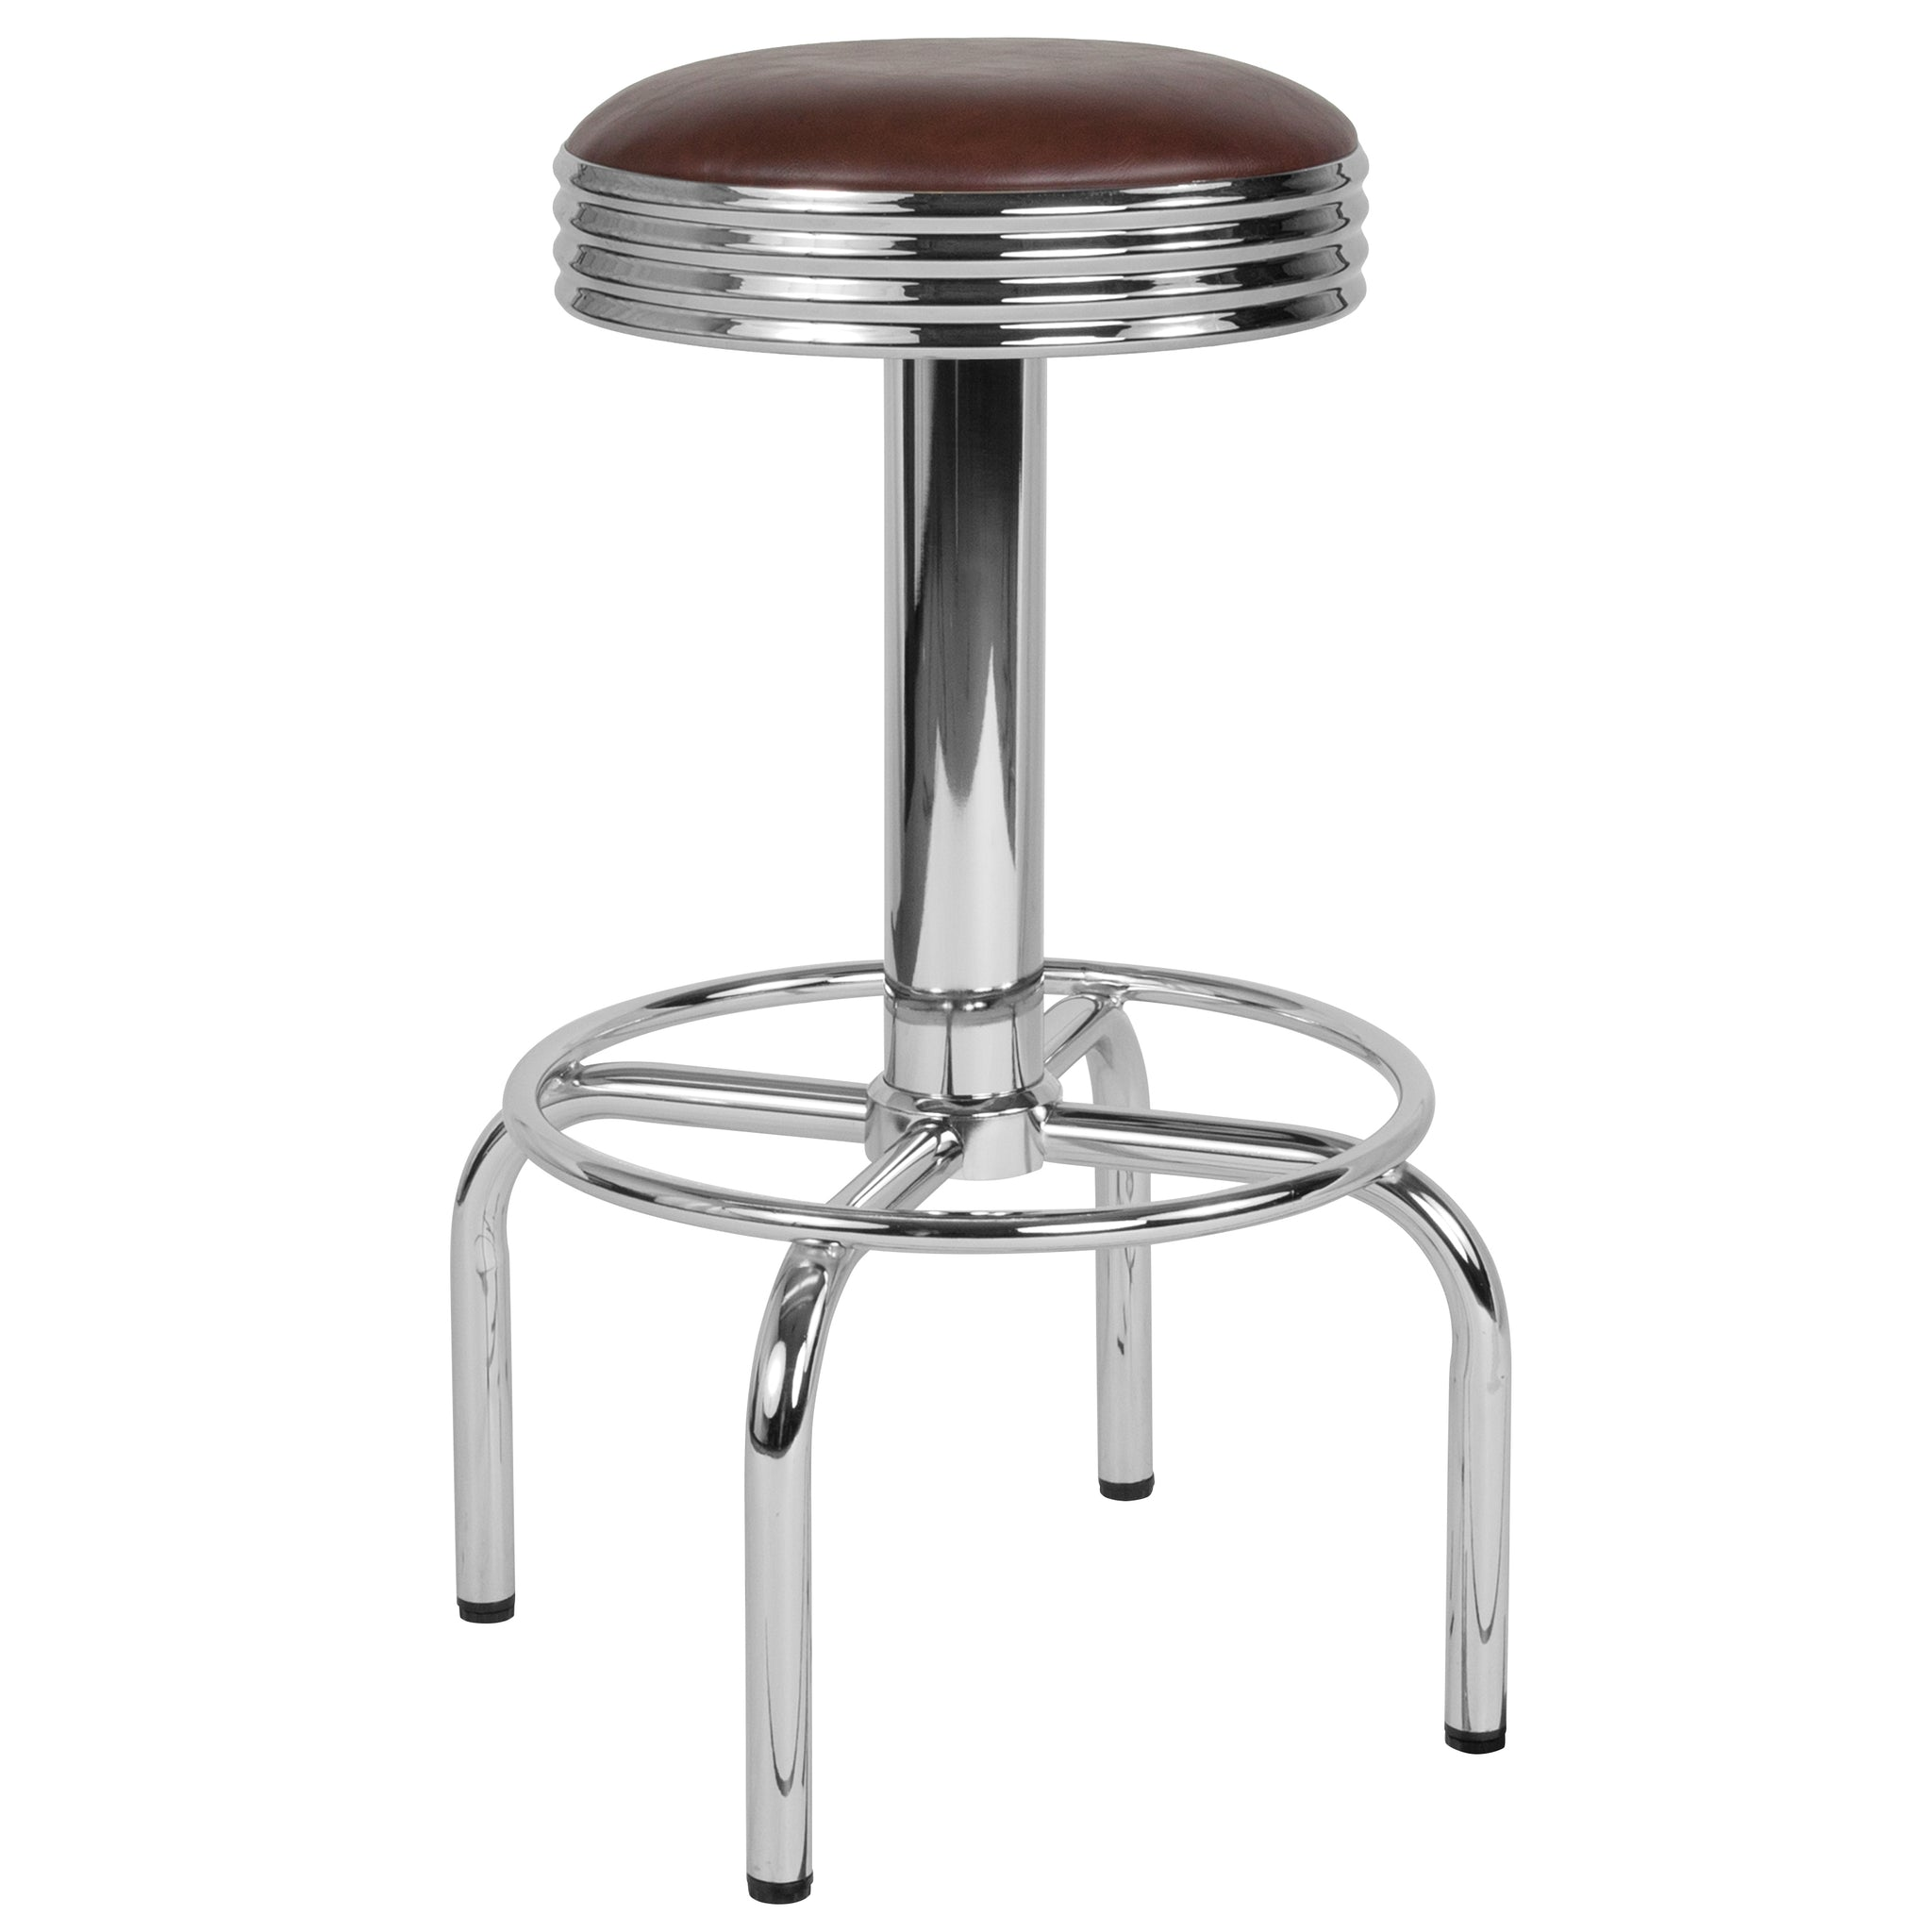 Retro Diner Barstool with Chrome Base in Brown Vinyl